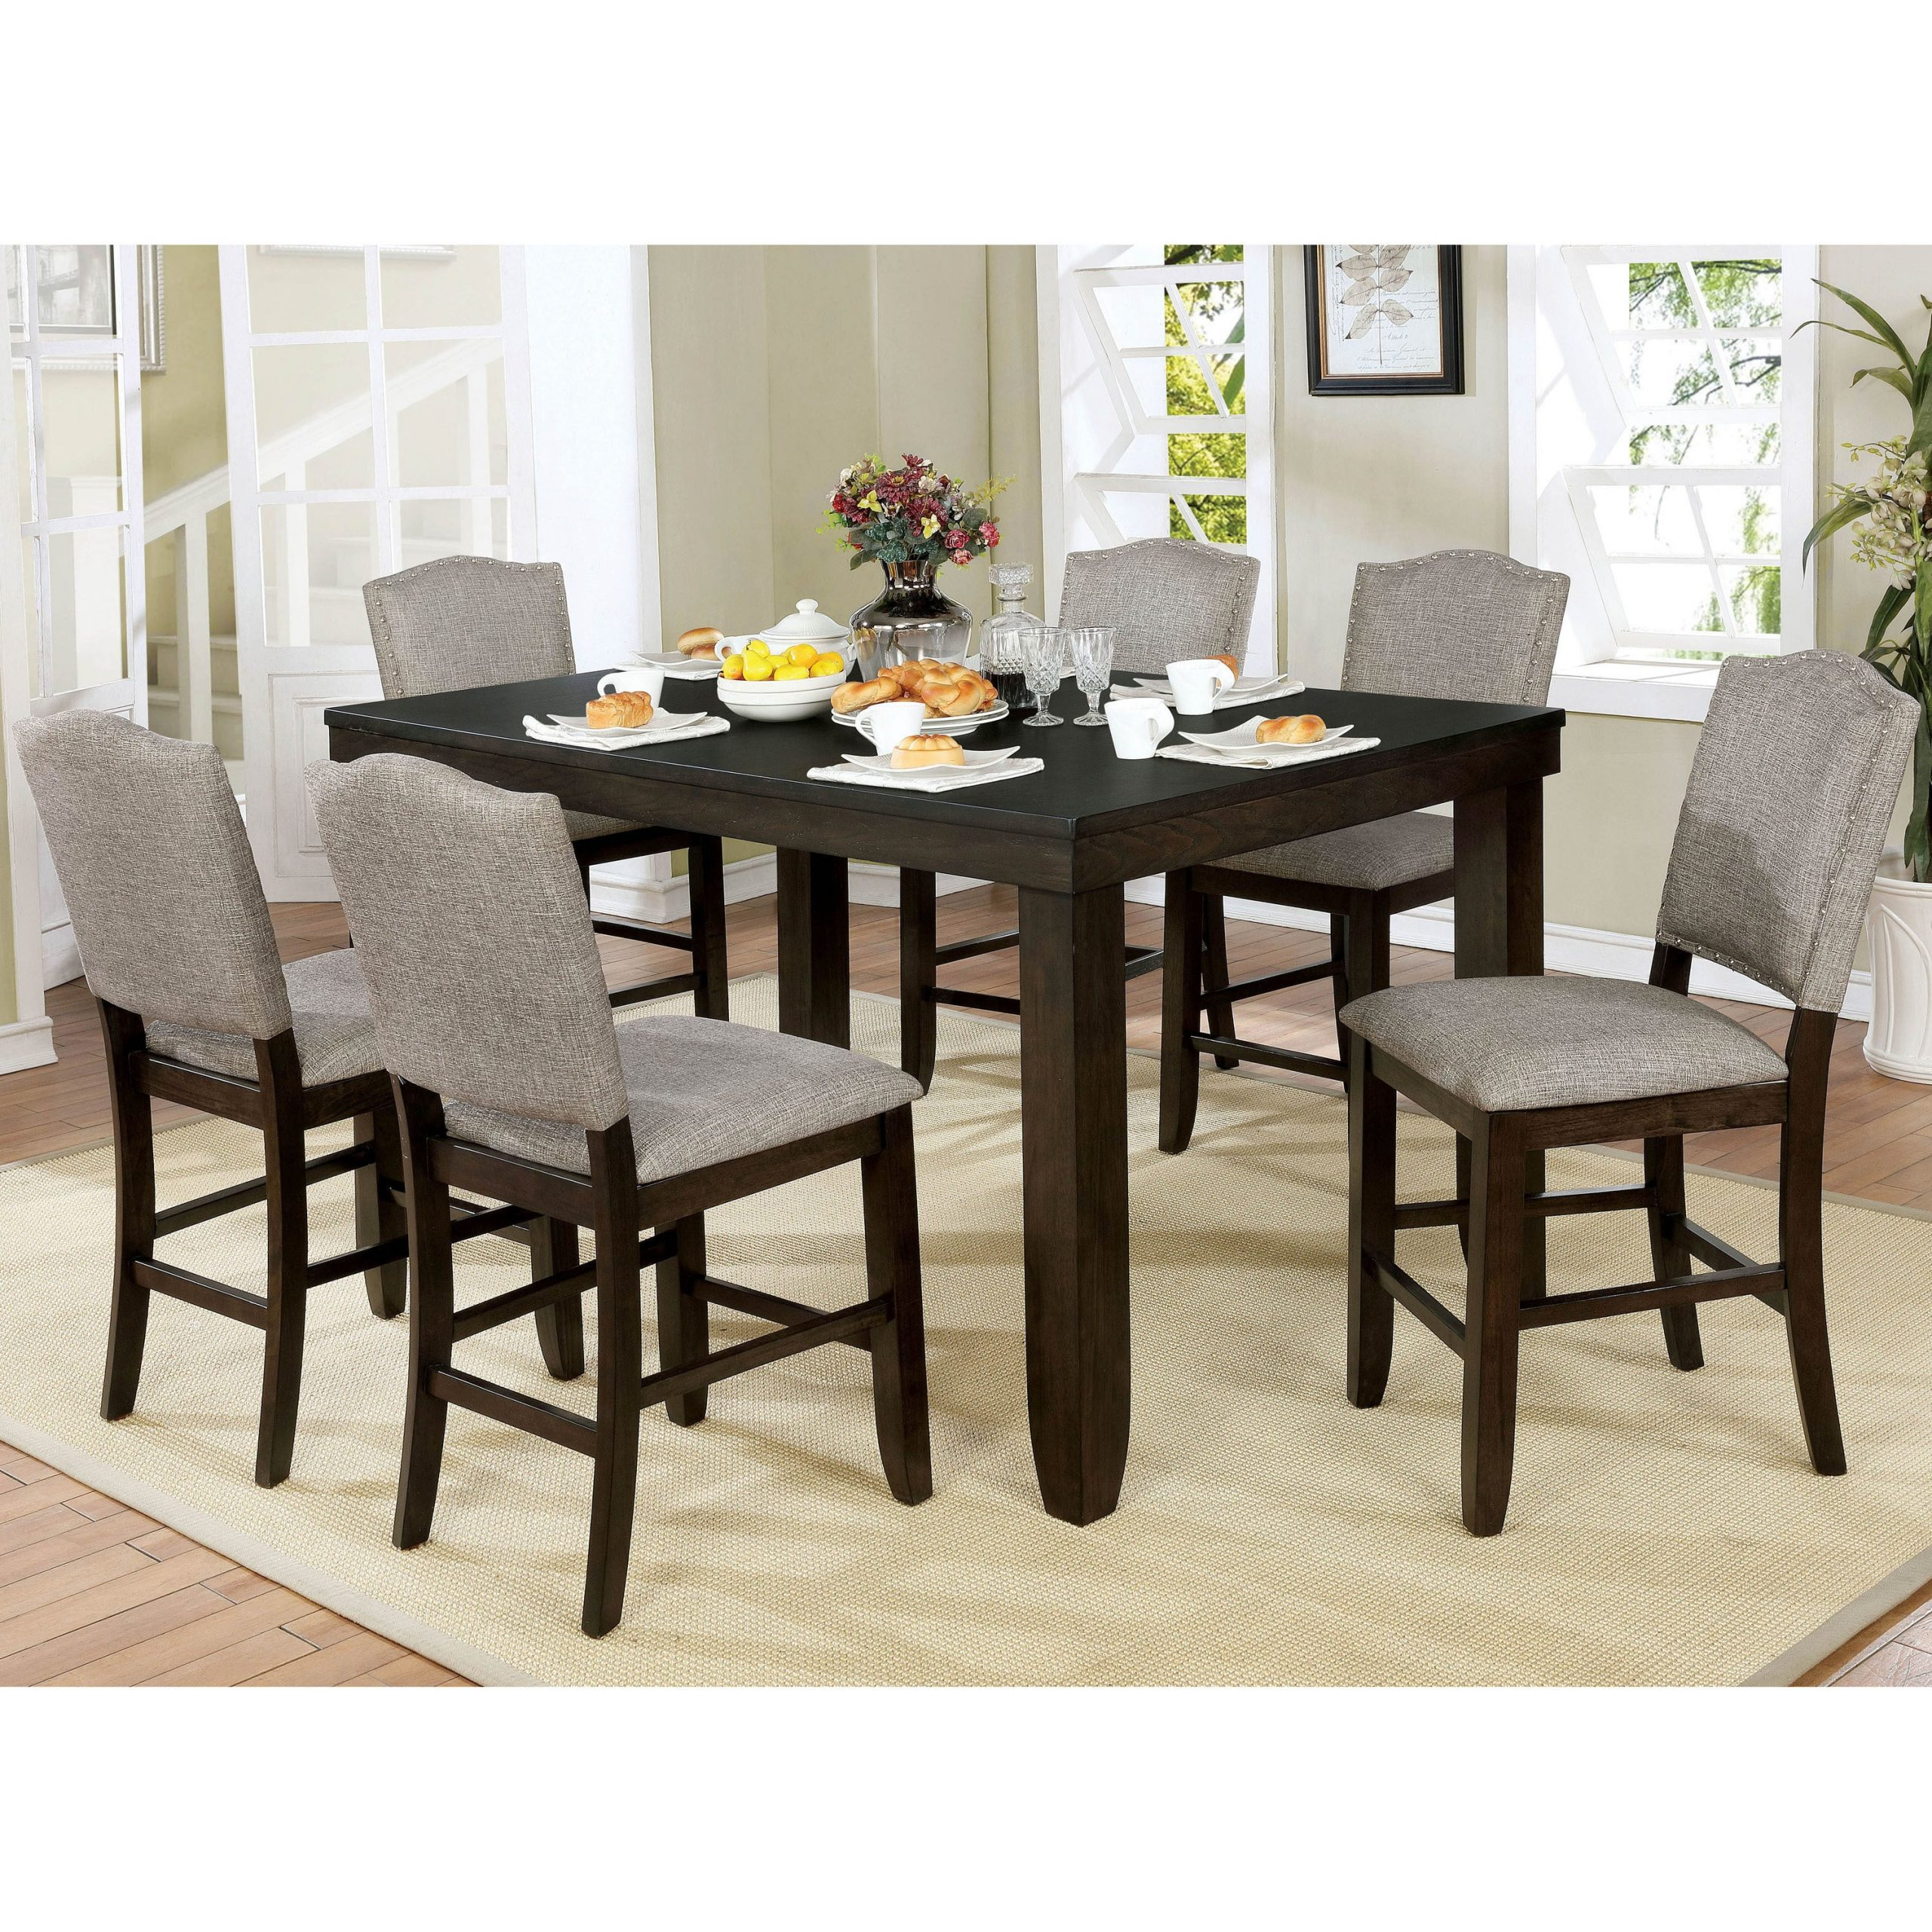 Furniture Of America Davenport Transitional Dark Walnut Counter Height Dining Table In Latest Benchwright Bar Height Dining Tables (View 5 of 25)